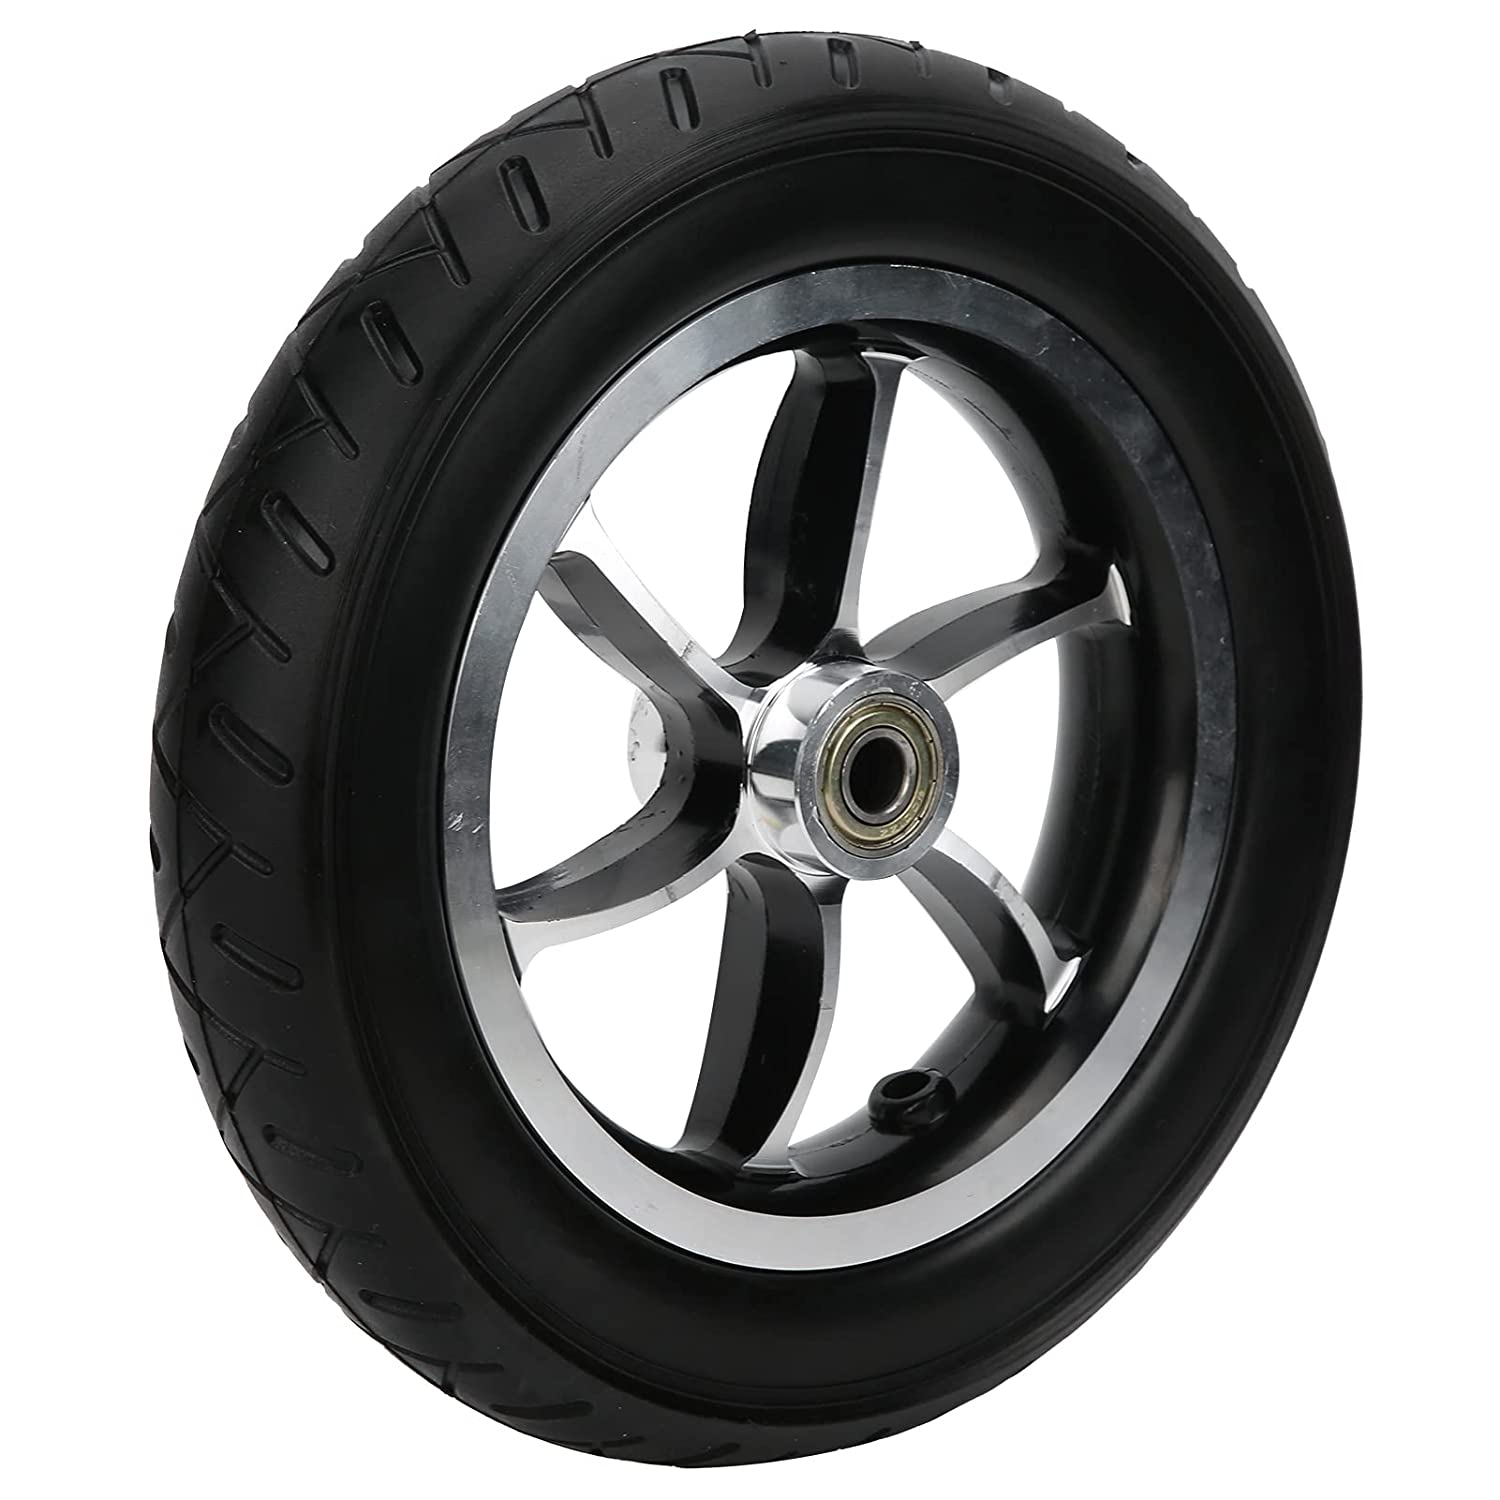 Solid 4 years warranty Wheel Excellent Performance Shock Absorption Dedication